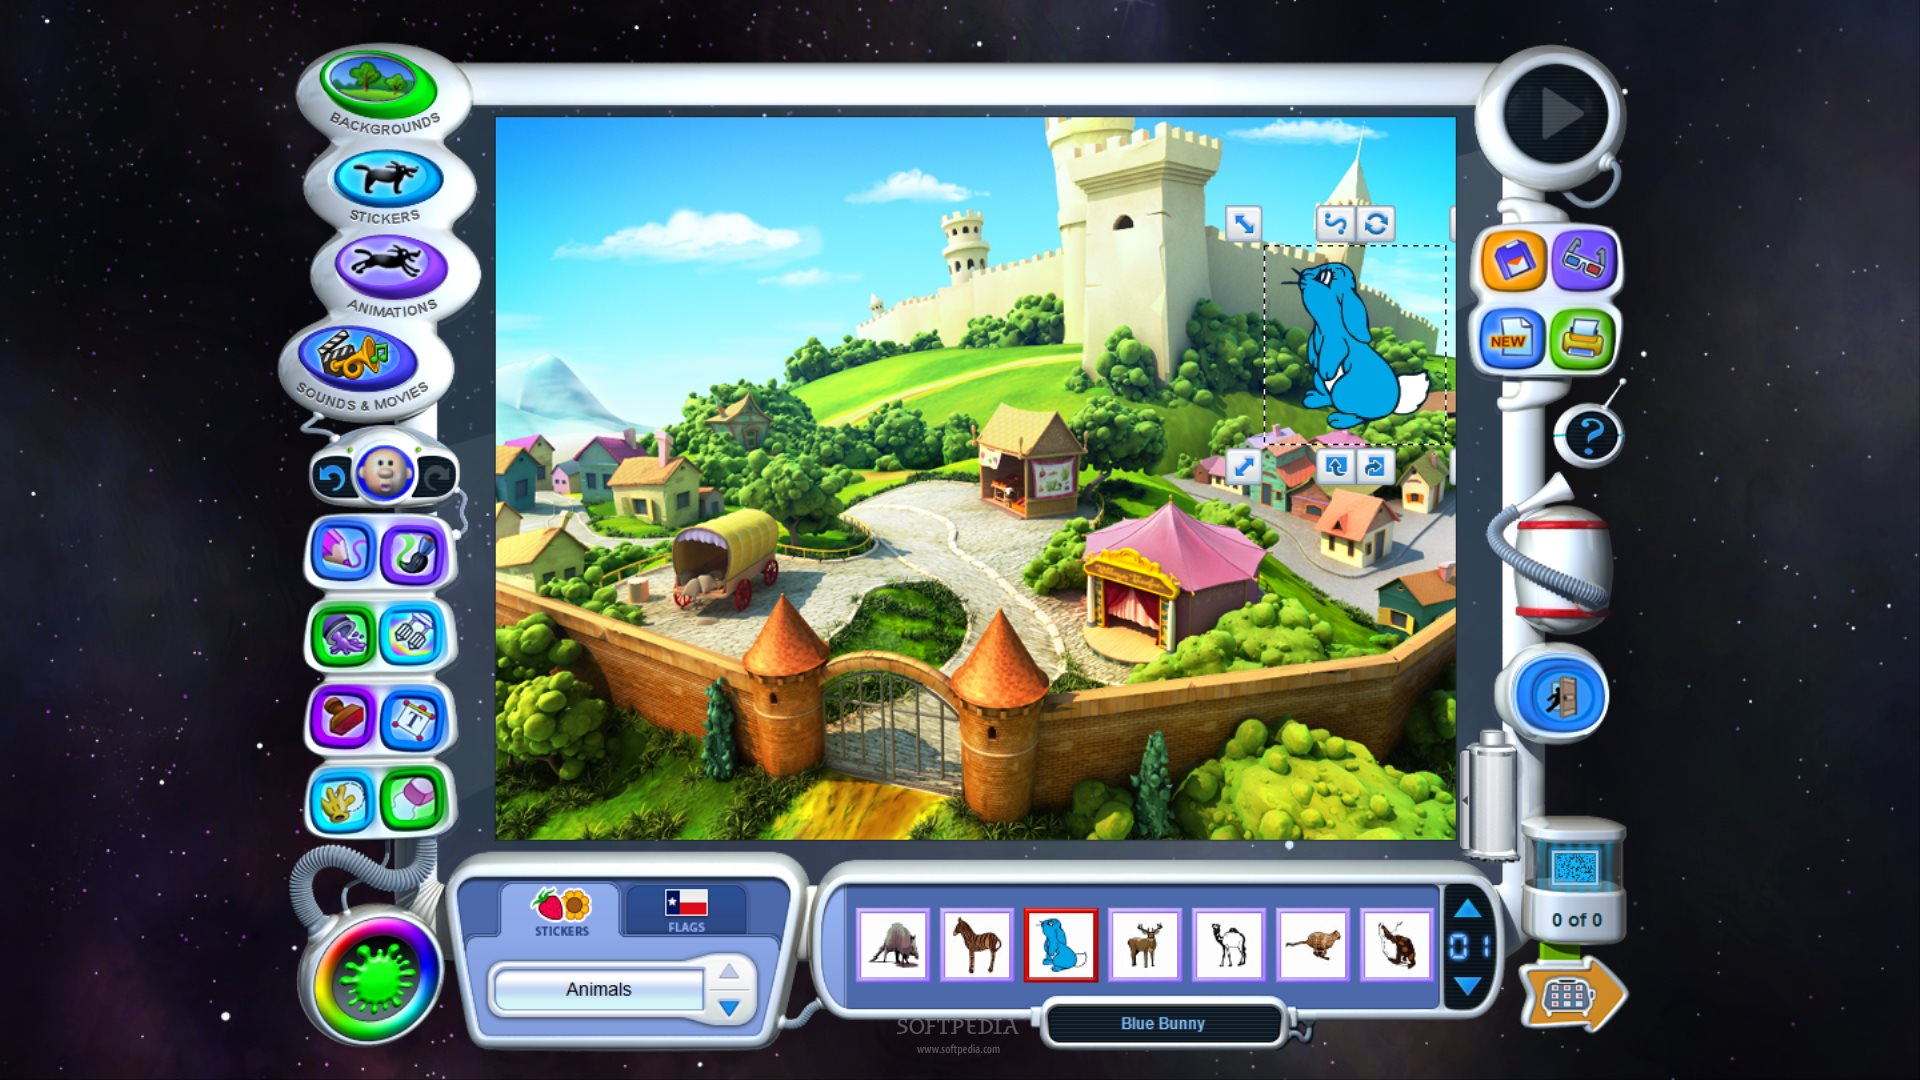 Free Download Kid Pix Deluxe  For Windows Xp